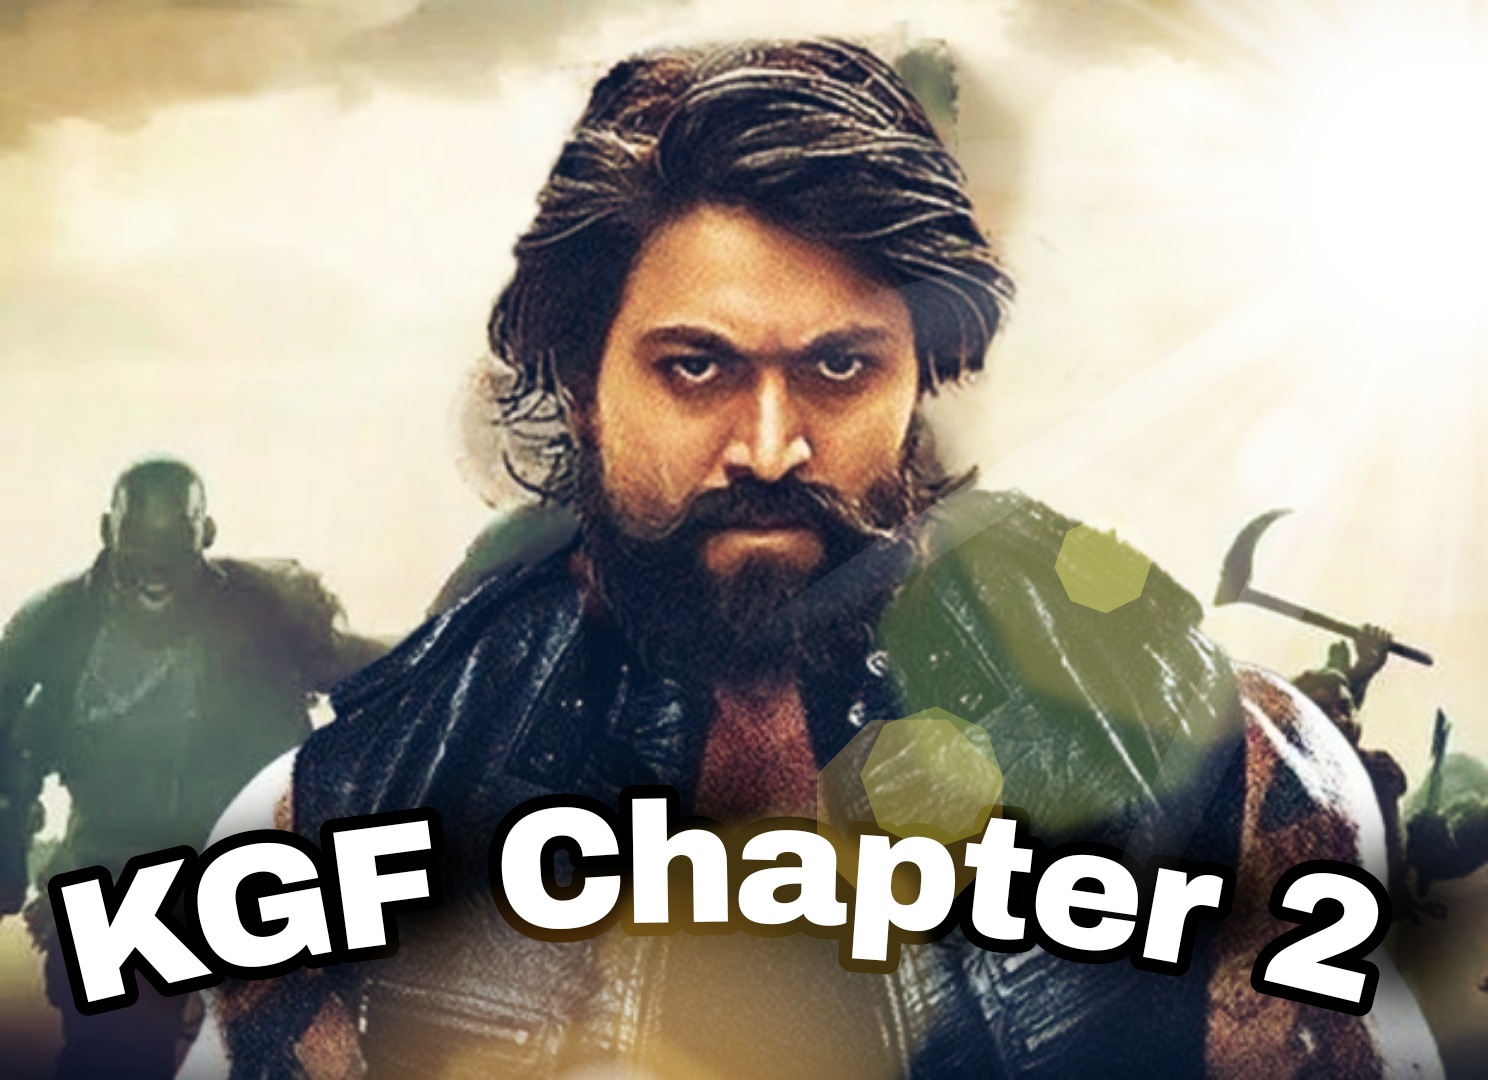 Is KGF chapter 2 leaked?   Kgf chapter 2 leak